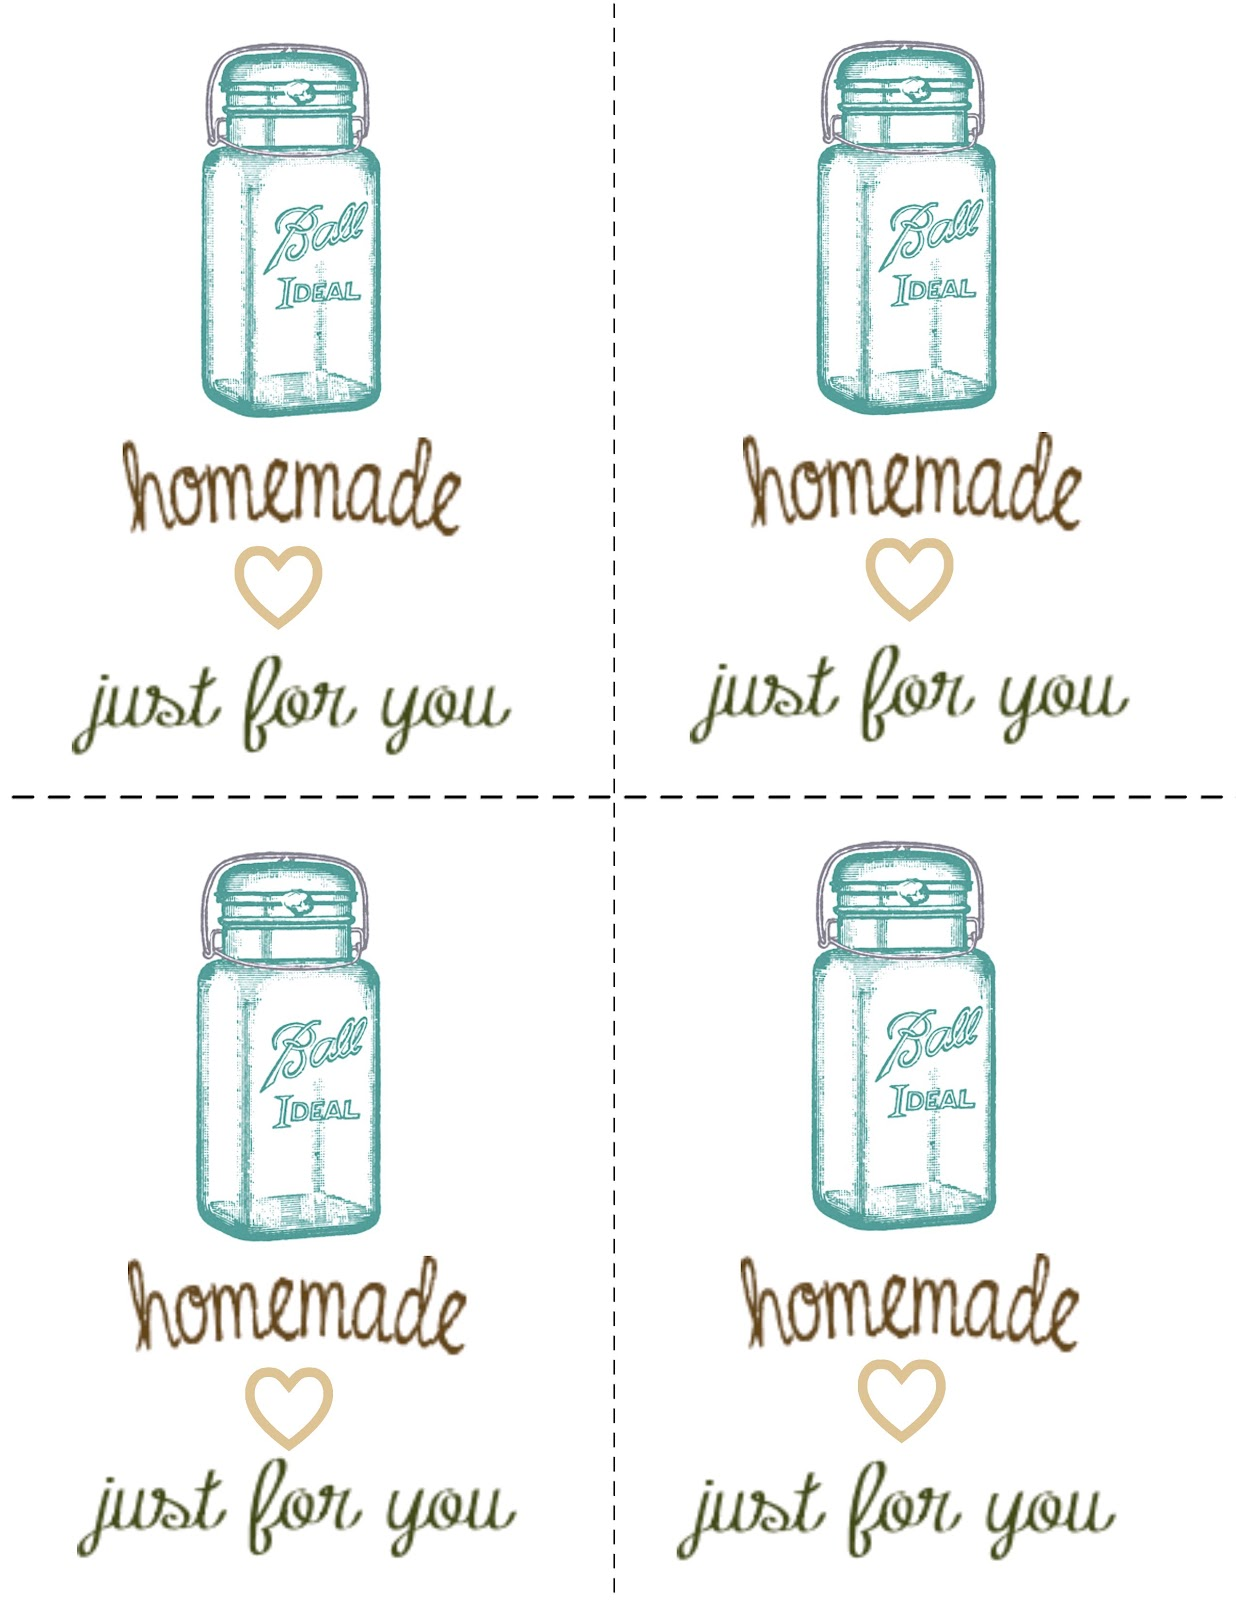 Misty d designs ball jar printable gift tags i have tried to createdesign my own free printable i am so excited to share it with all of you today negle Gallery